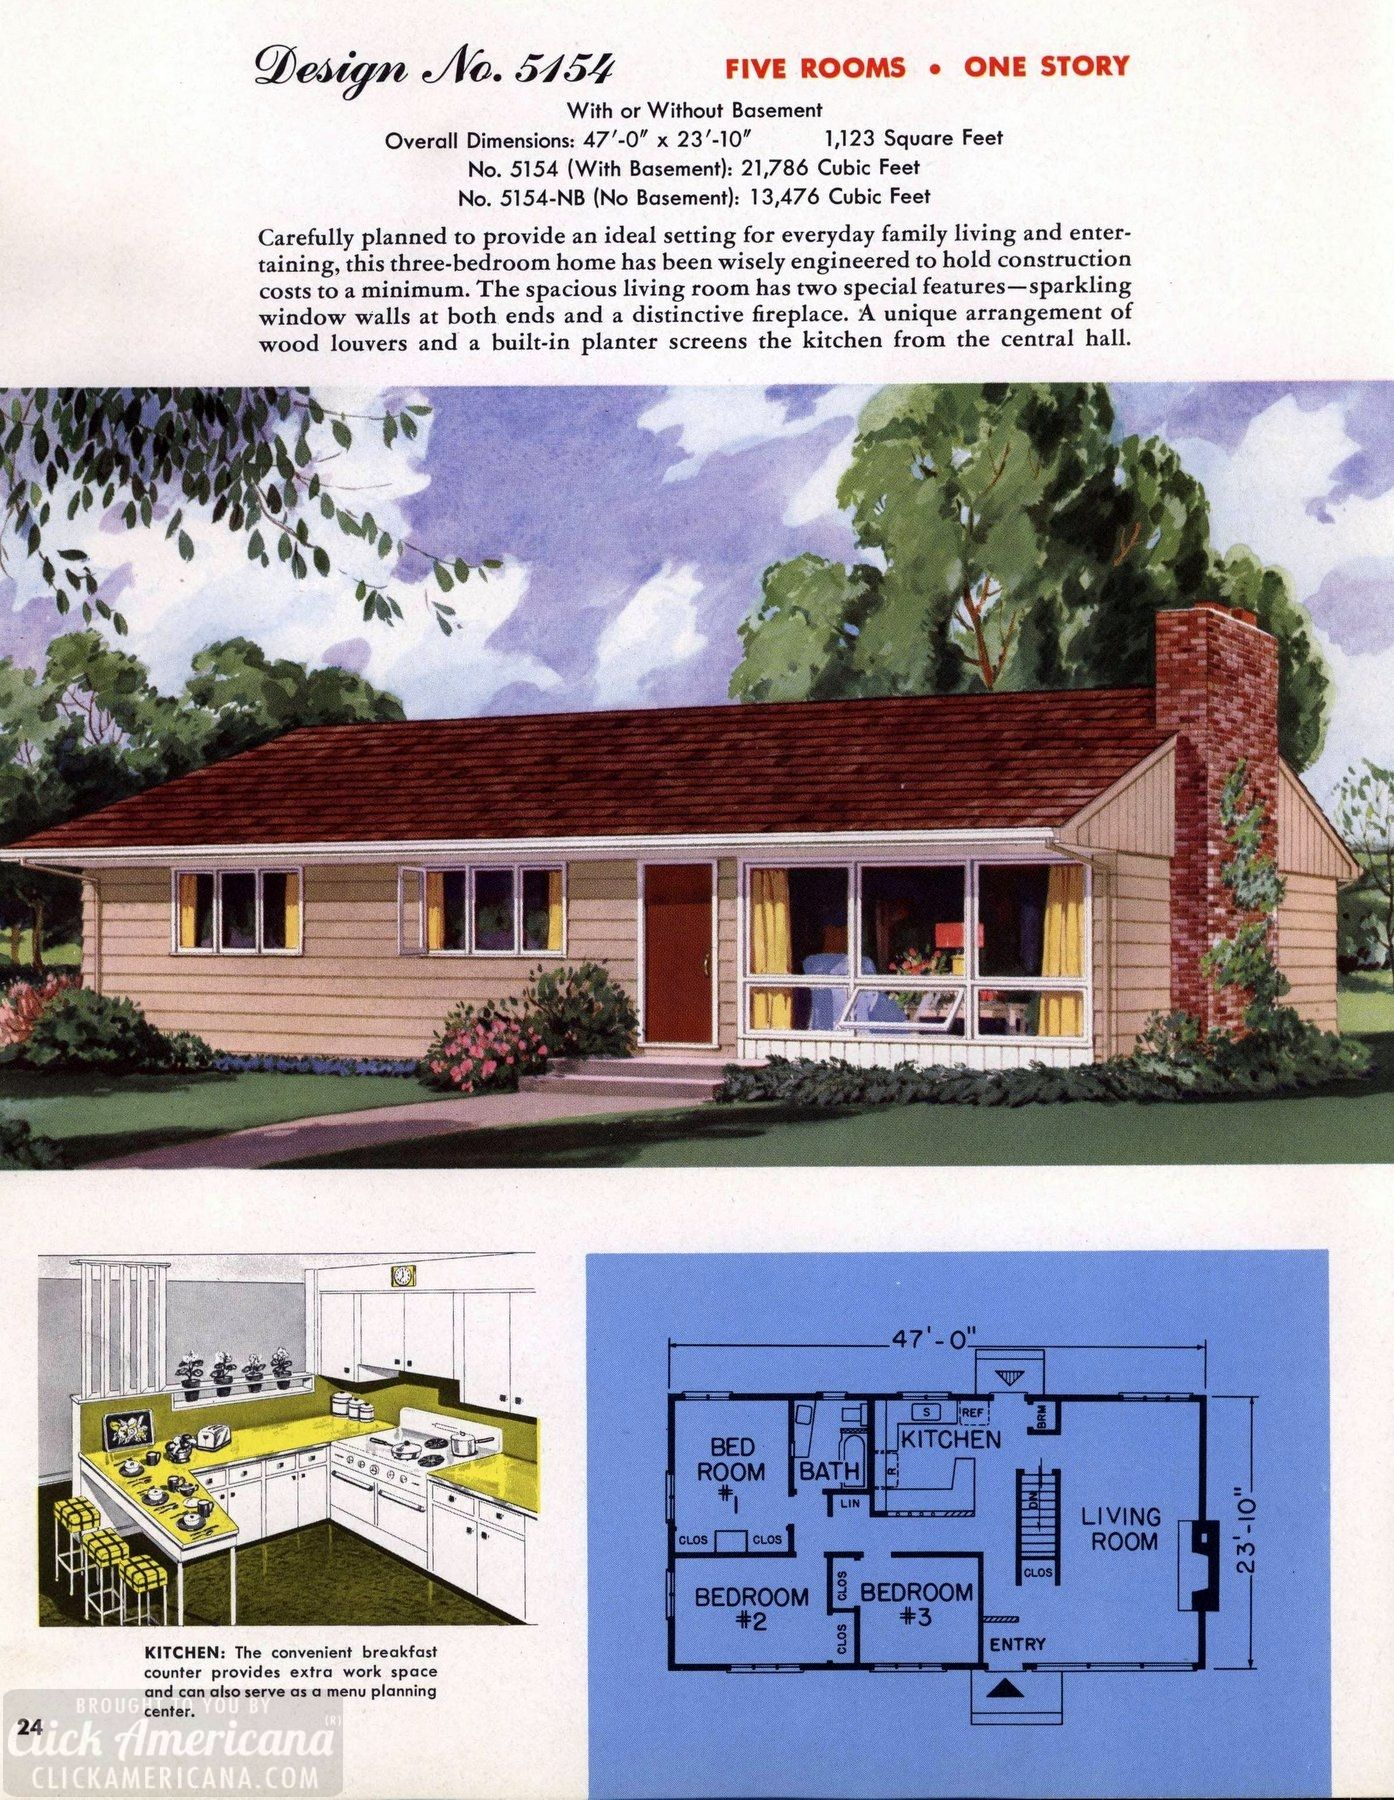 Classic House Plans From 1955 50s Suburban Home Designs At Click Americana 25 Vintage House Plans Sims House Plans Classic House